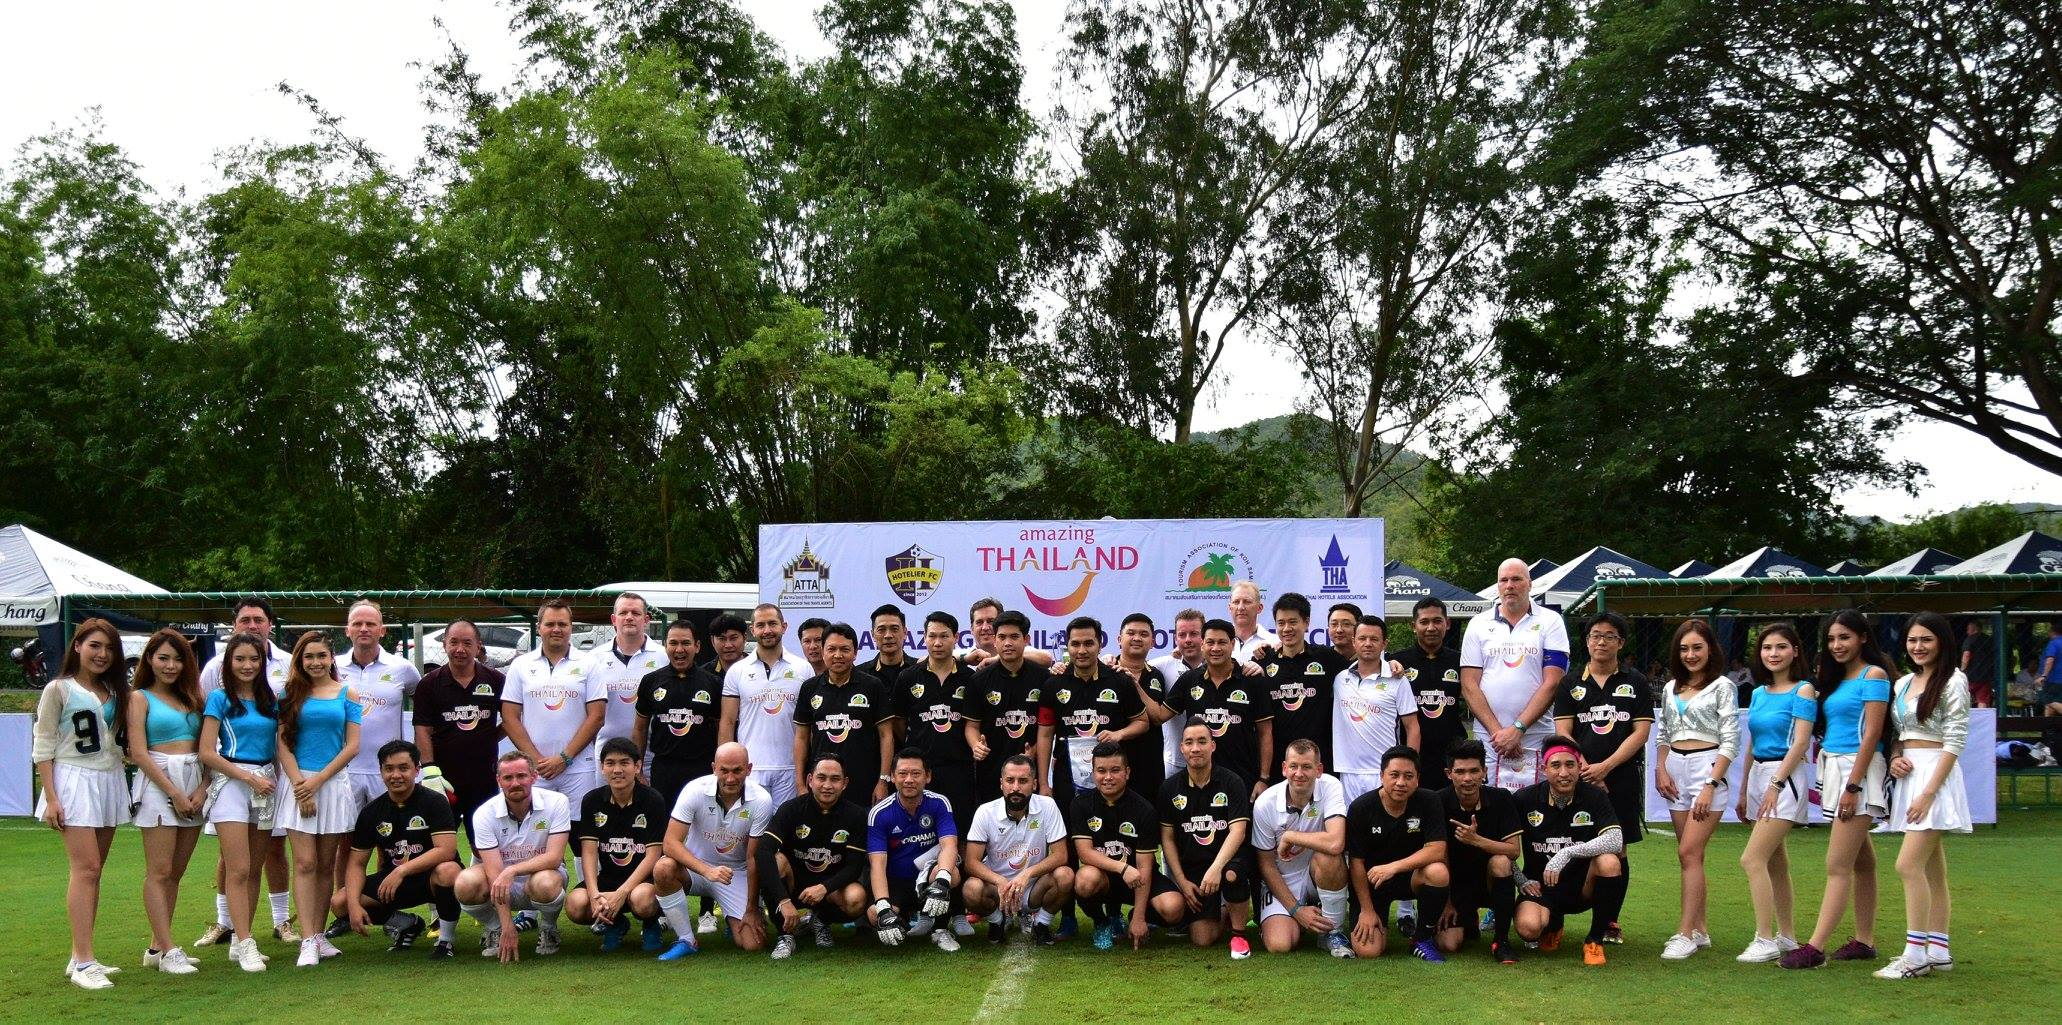 TTM AMAZING THAILAND FOOTBALL MATCH